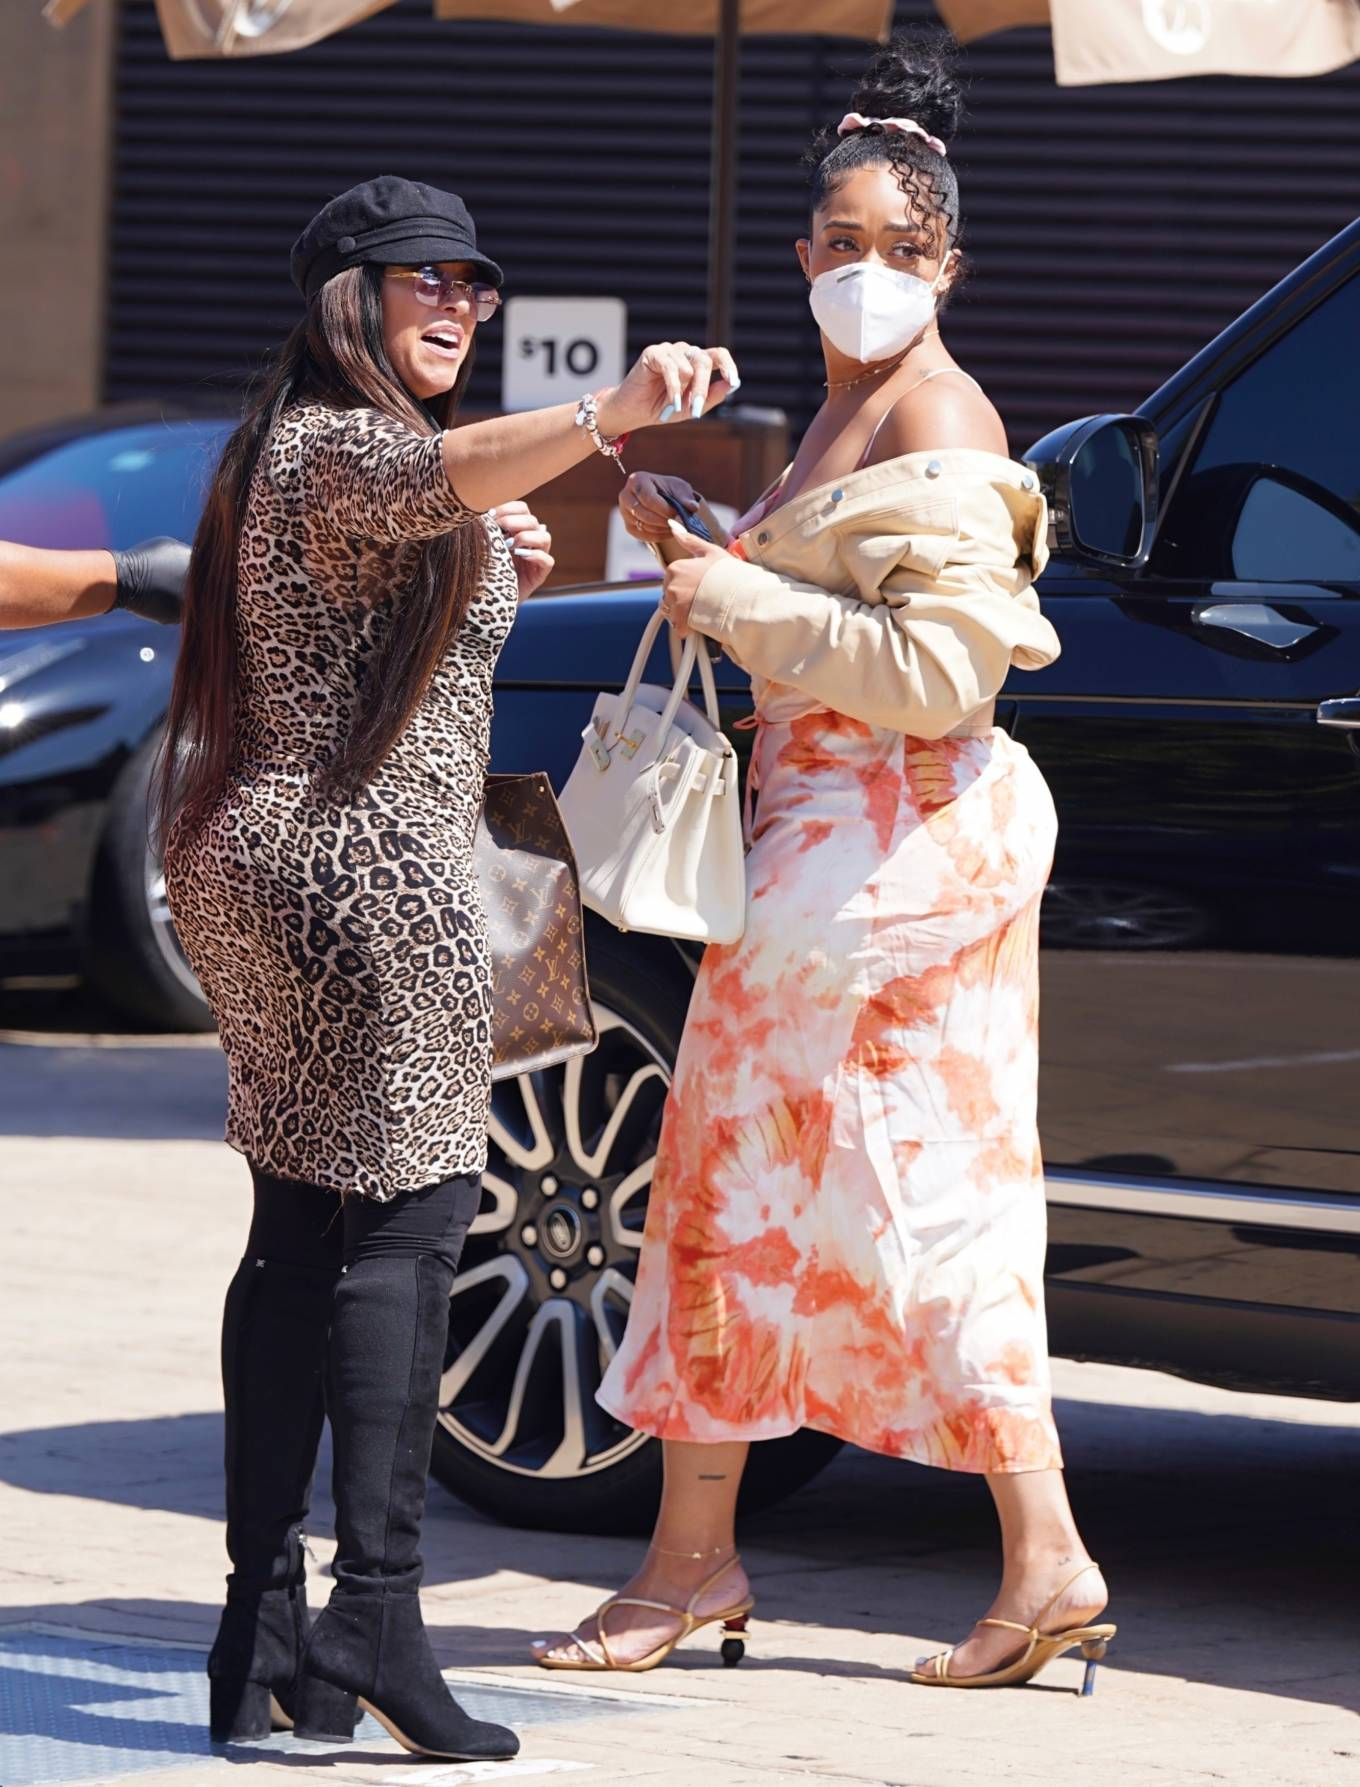 Jordyn Woods with her mother and sister at Nobu in Malibu